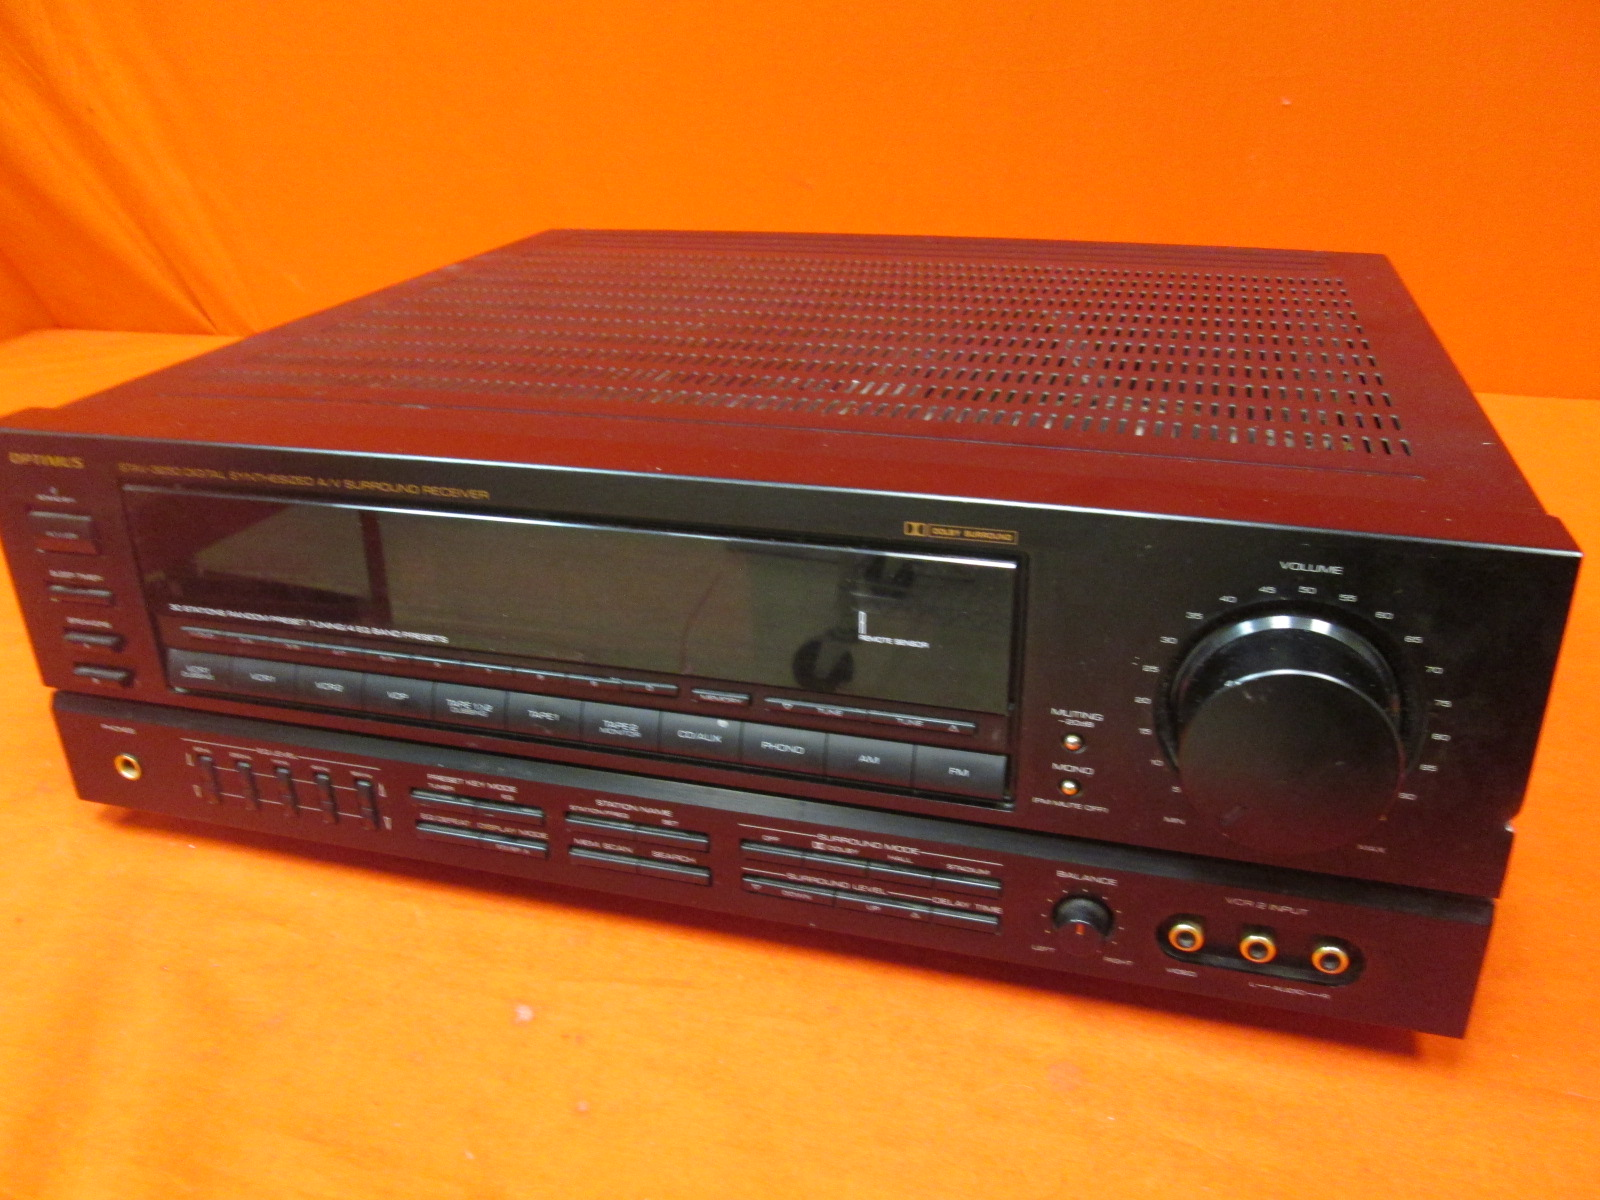 Broken Optimus STAV-3250 Sythesized Stereo Receiver With Equalizer